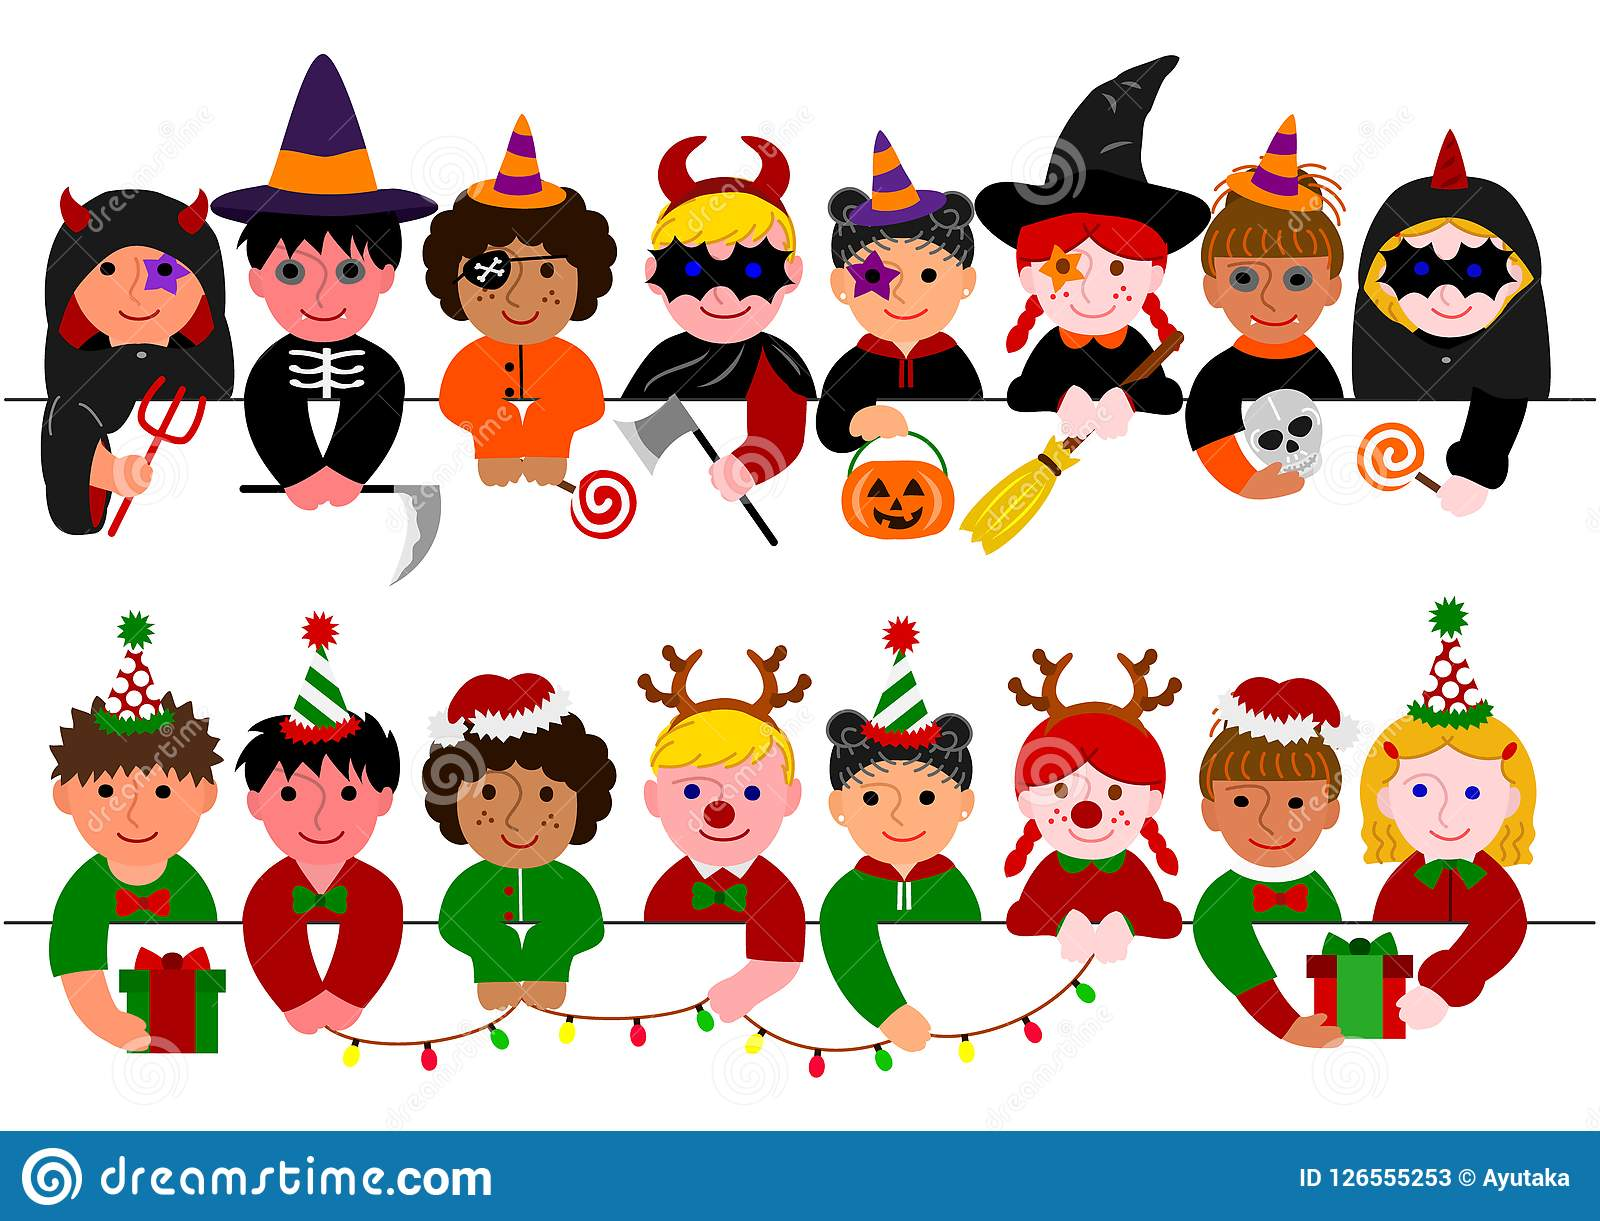 Halloween Thanksgiving Christmas Clipart.Cute Kids Border Set With Halloween Costumes And With